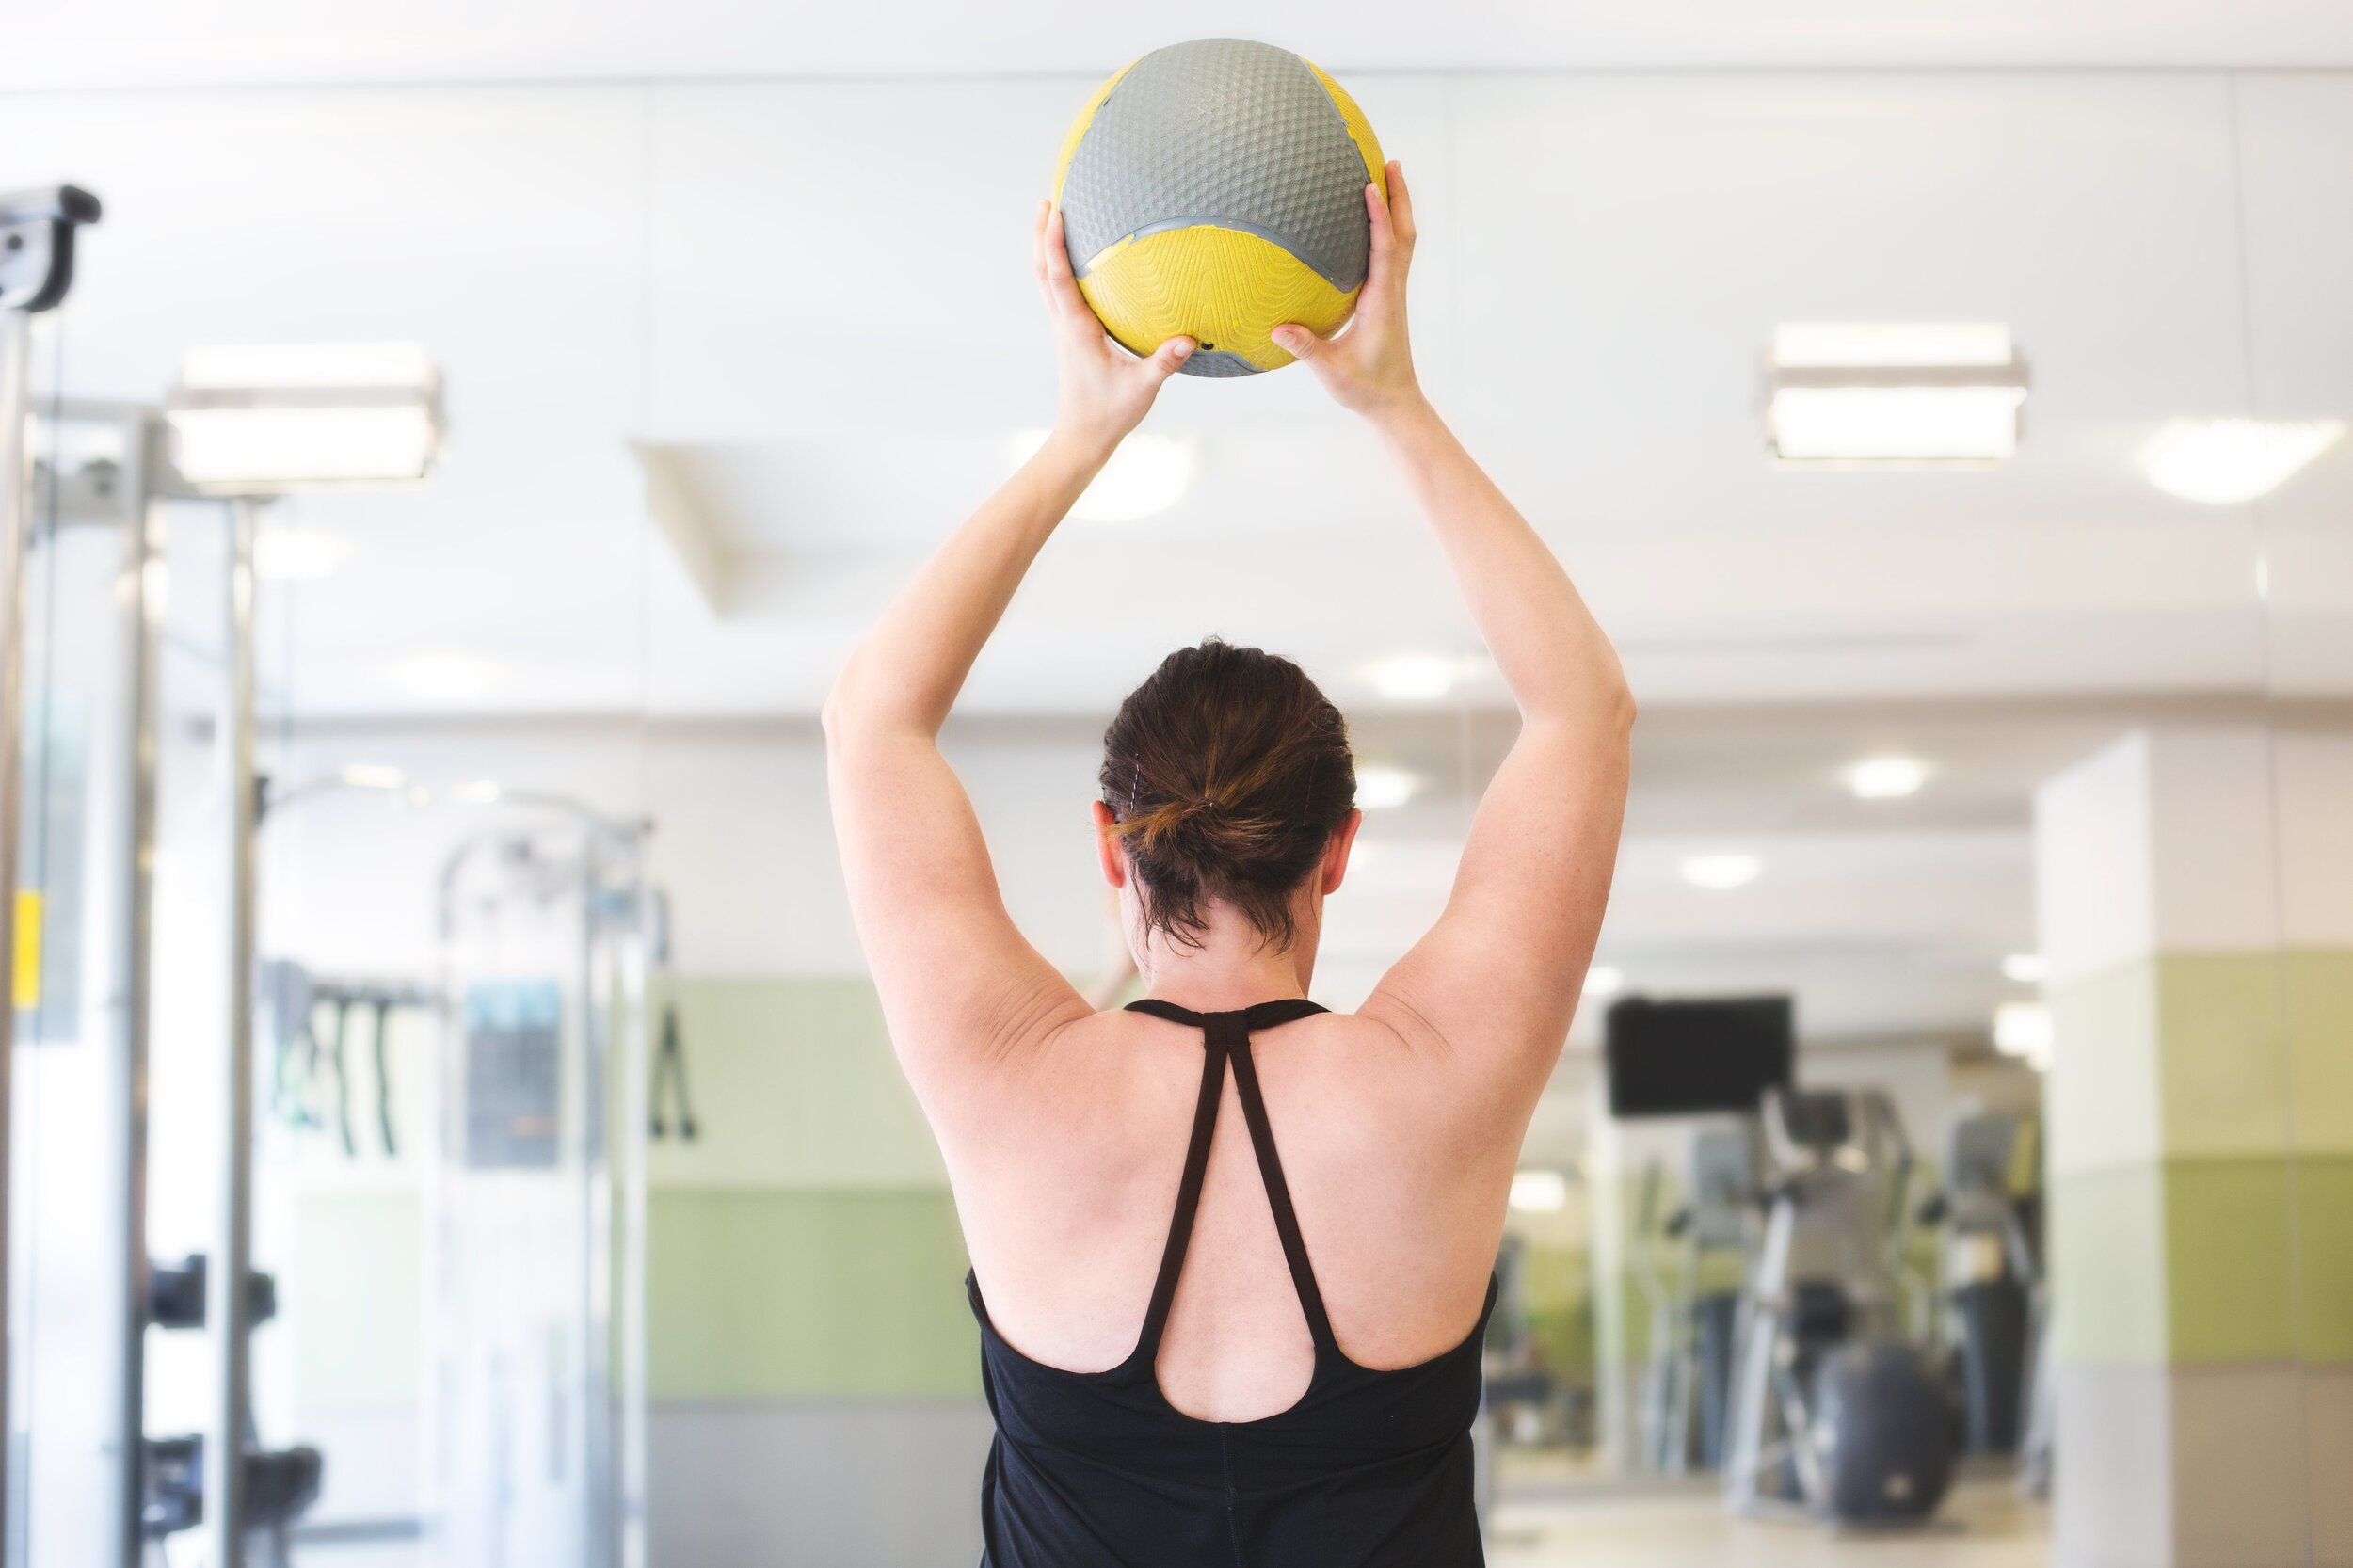 HIIT workouts are usually quite varied, which helps keep them from getting boring